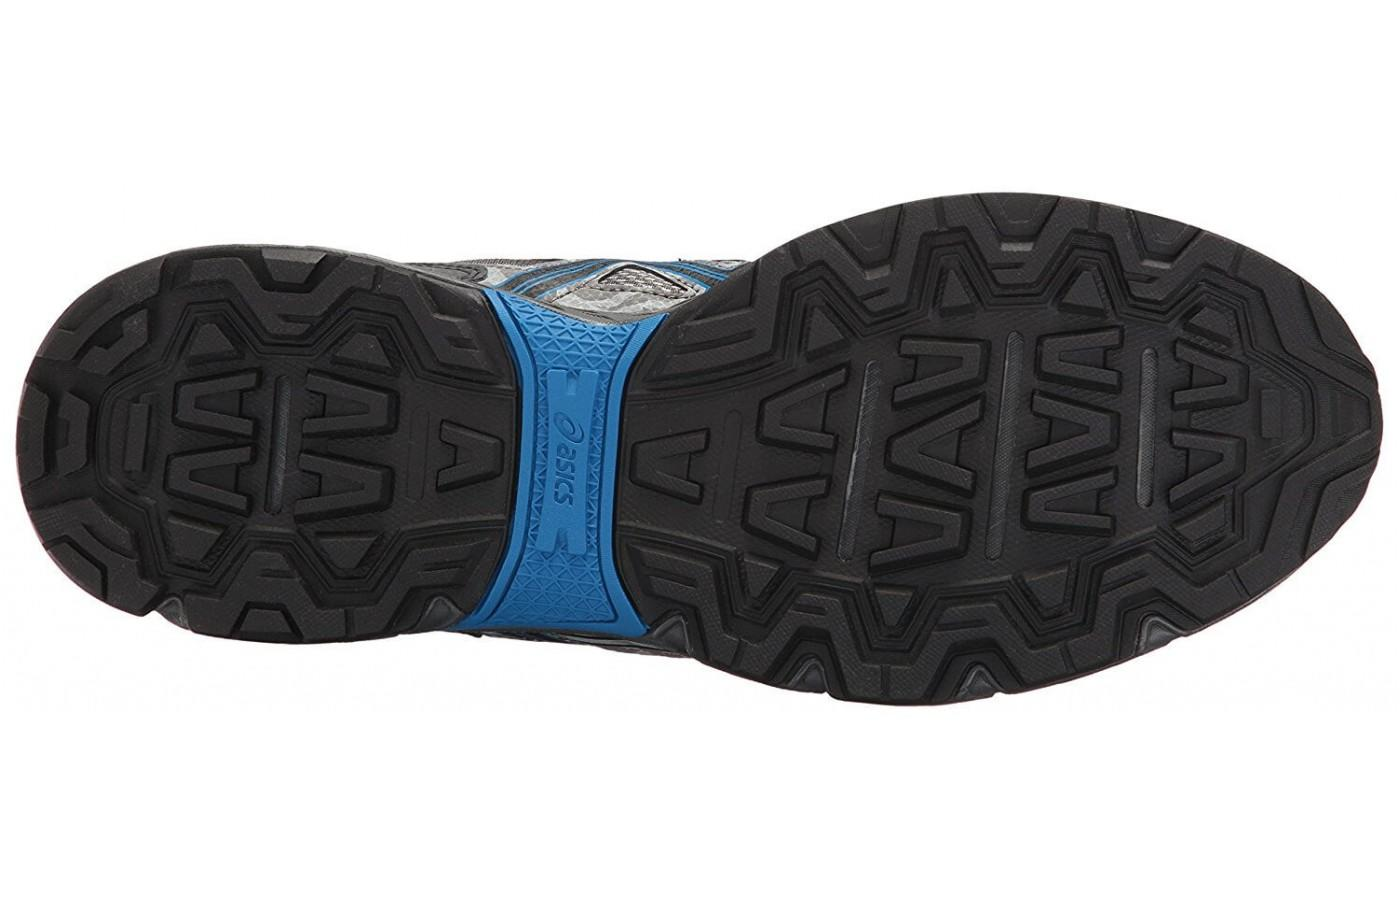 Asics Gel Venture 6 has a tread that can stand up to the trails